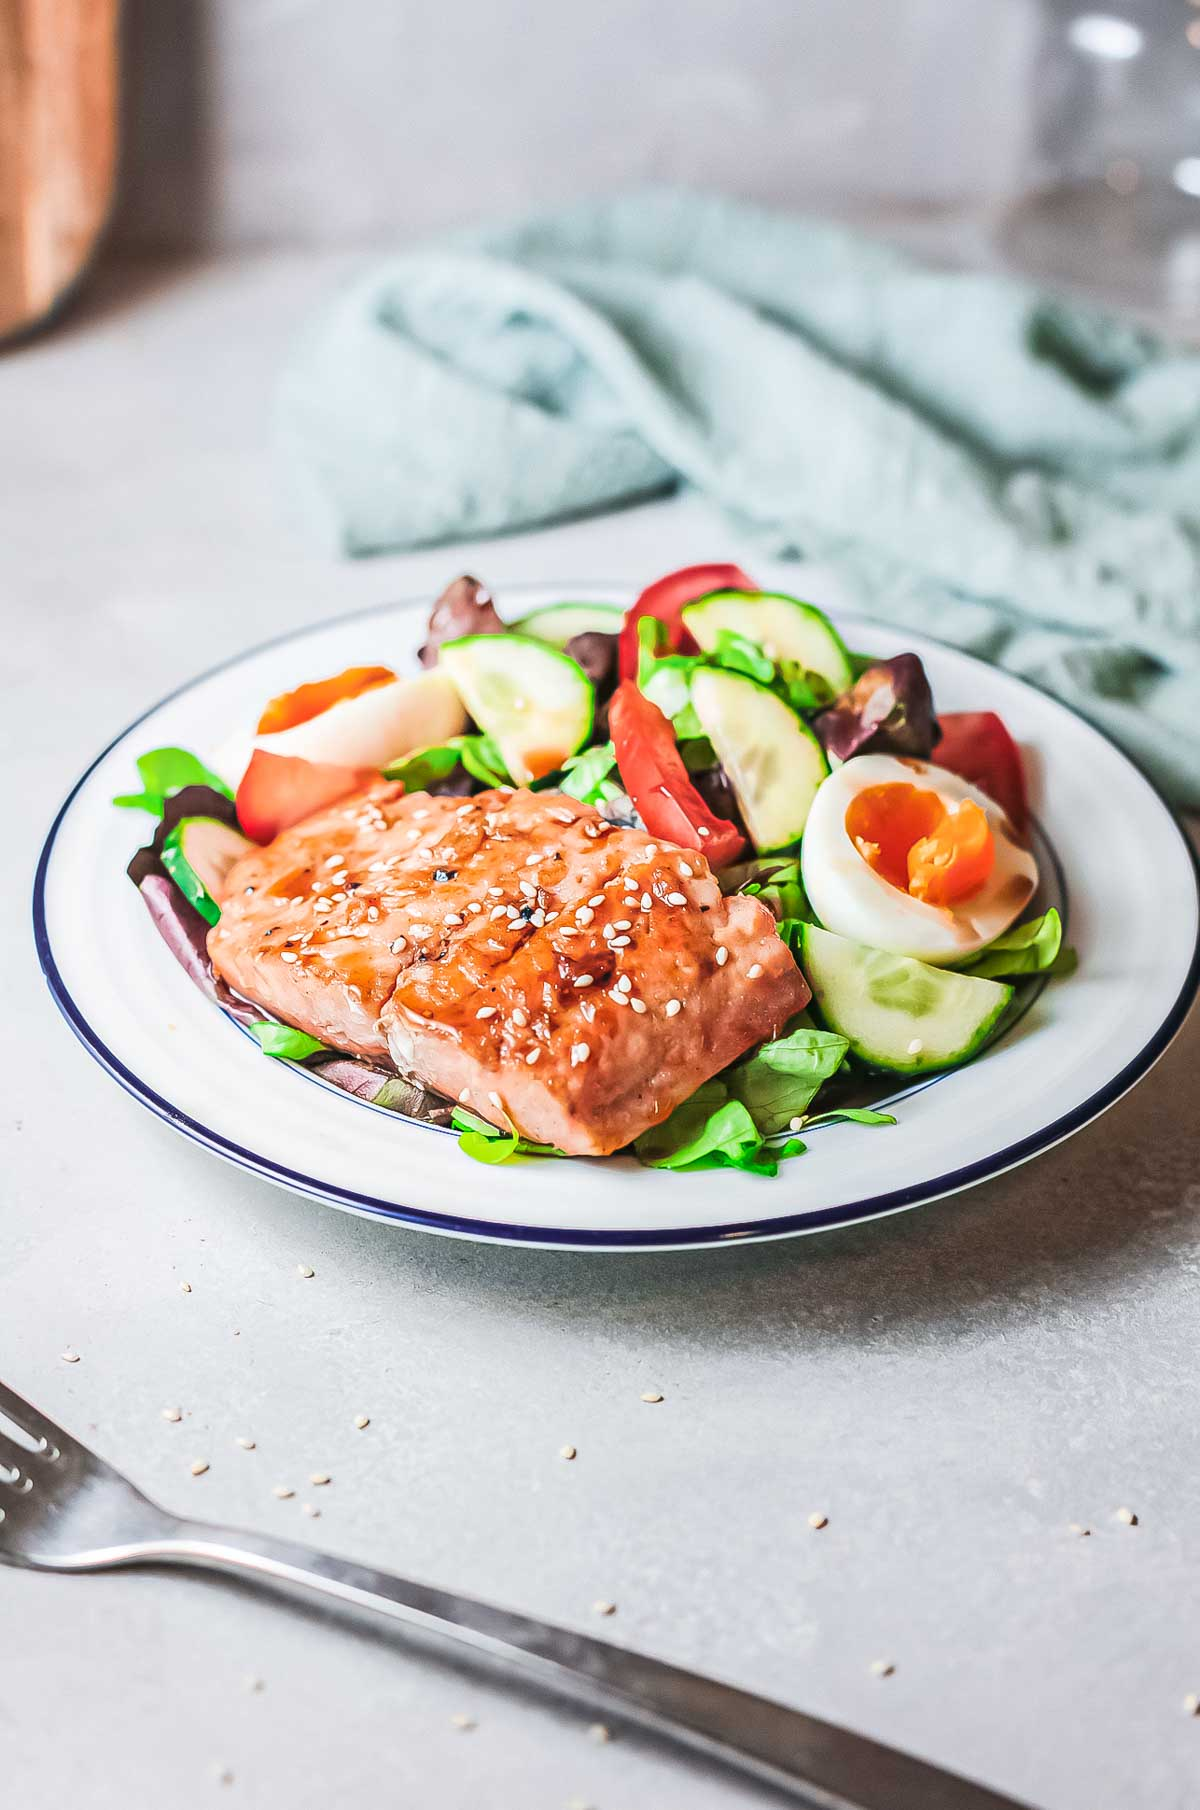 one plate of salmon teriyaki and salad on a table with a fork and blue cloth napkin